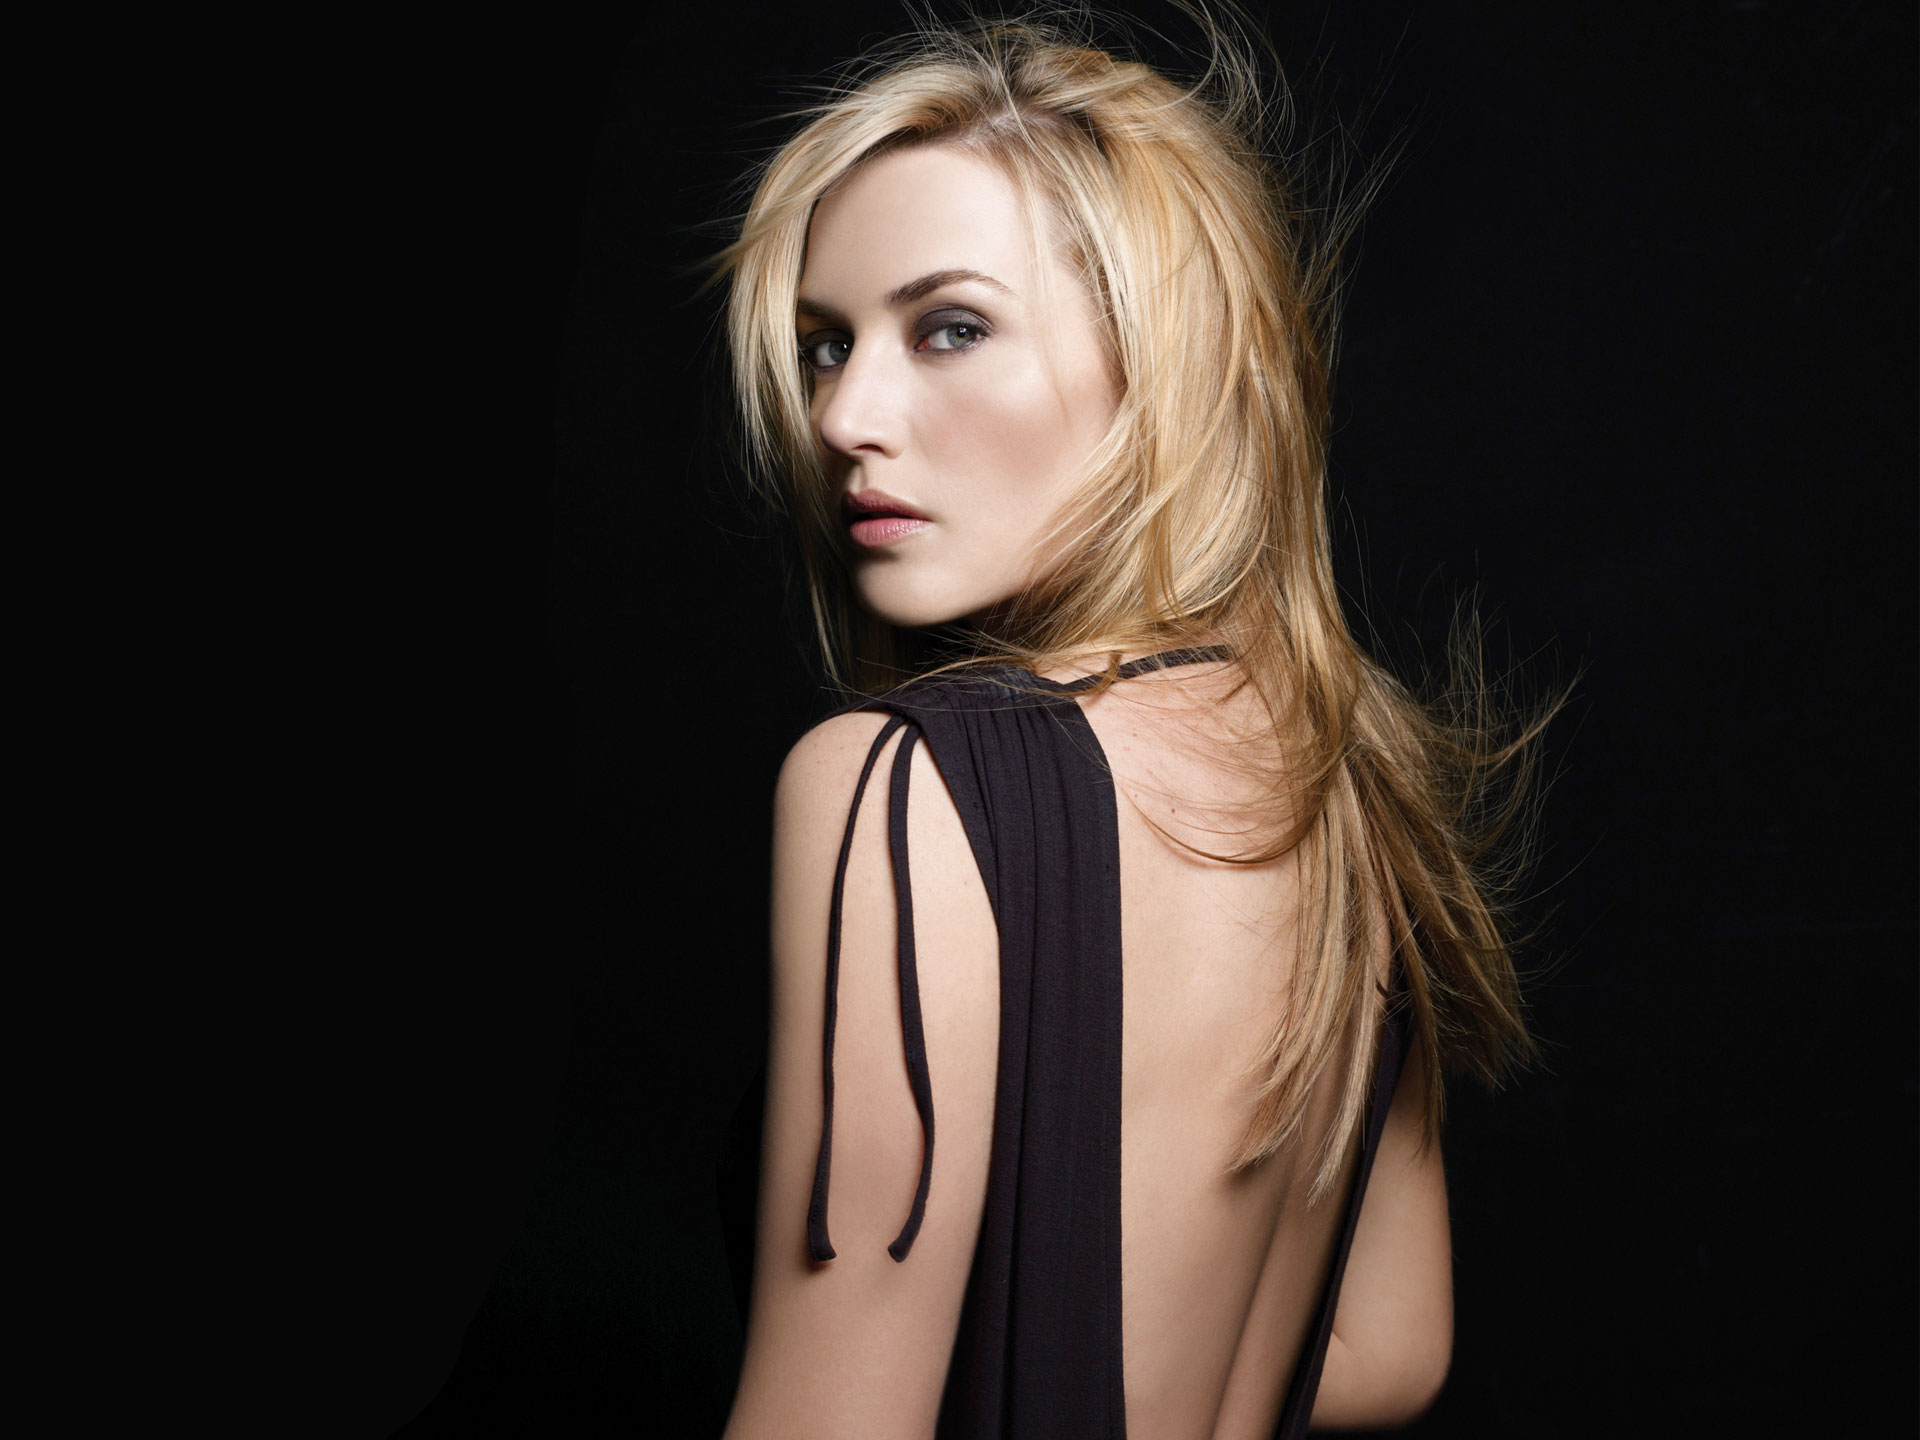 1920x1440 - Kate Winslet Wallpapers 30